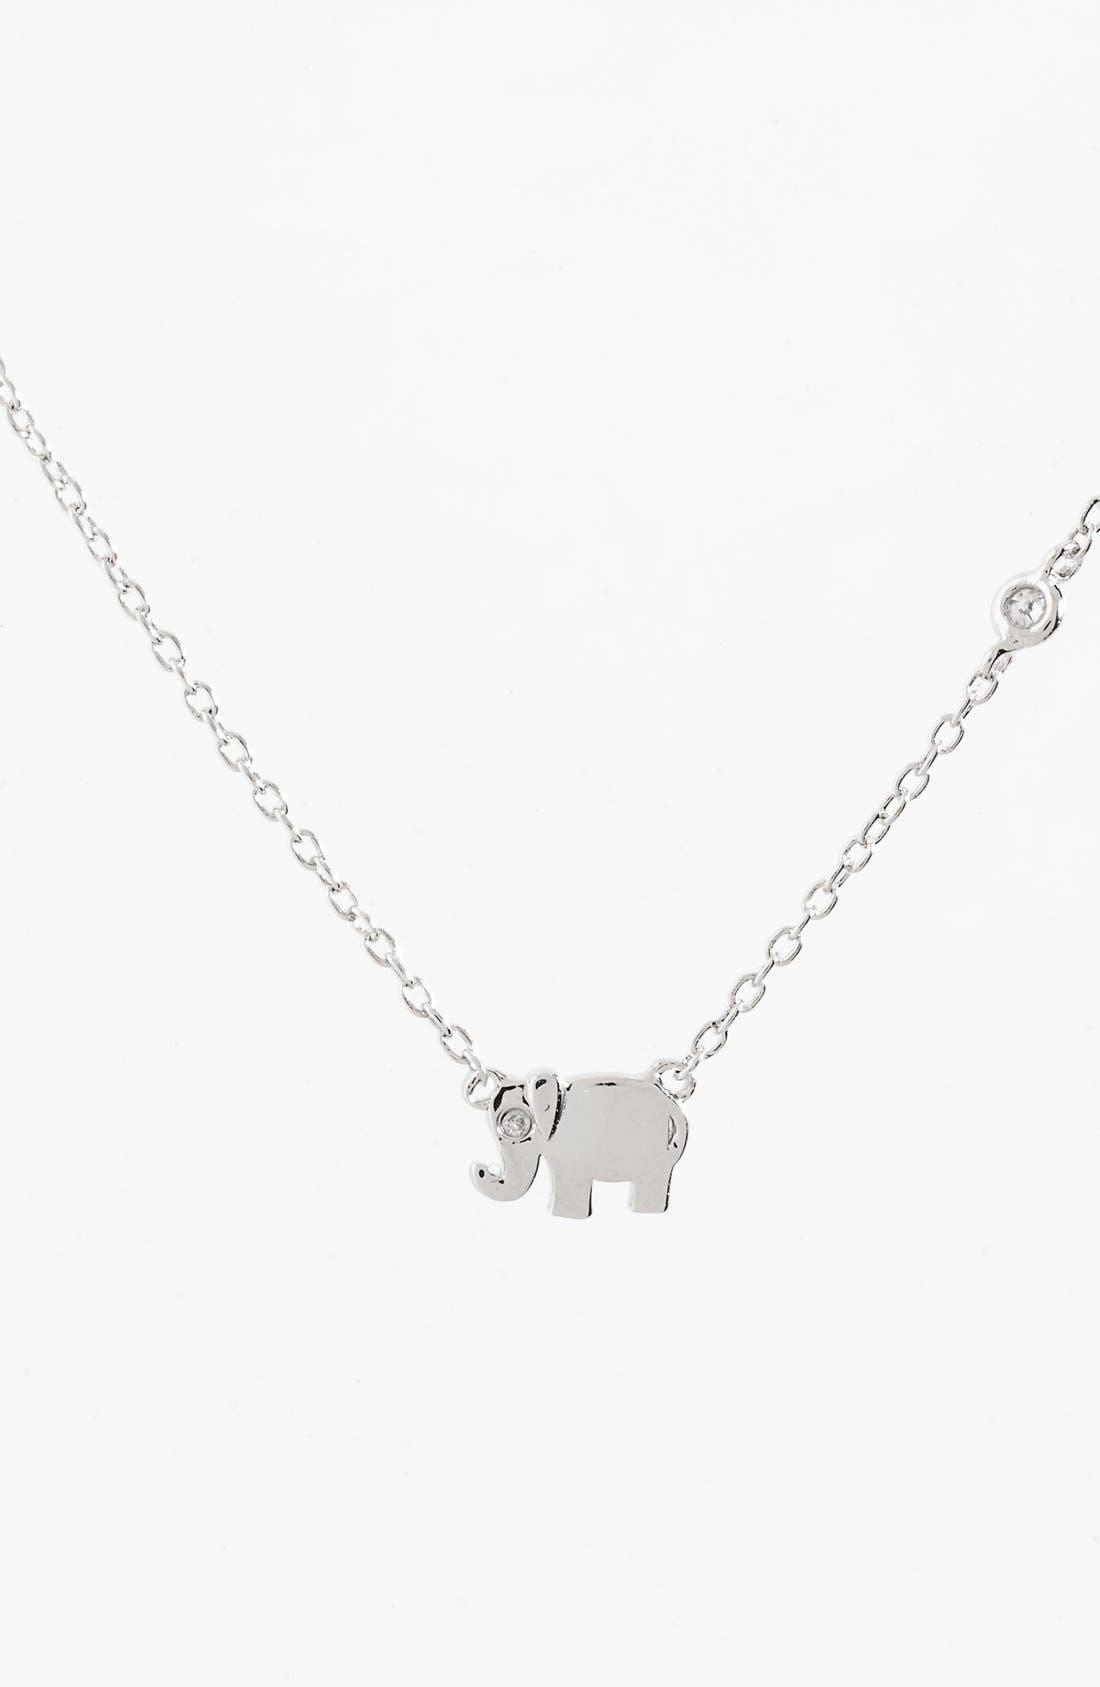 SHY by Sydney Evan Elephant Necklace,                             Main thumbnail 1, color,                             Silver